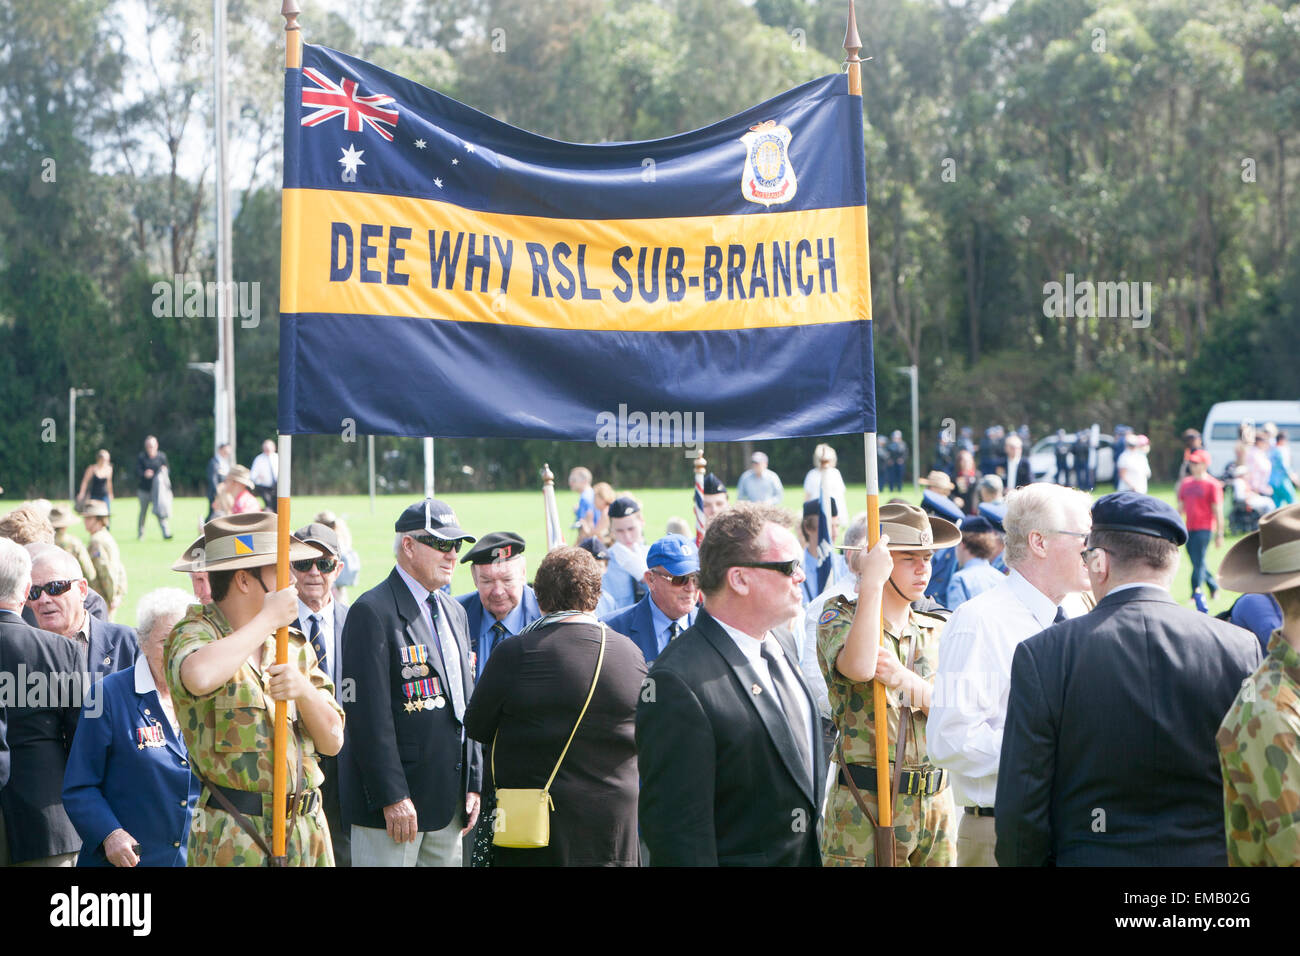 Sydney,Australia. 19th April, 2015. ANZAC commemorative and centenary march along pittwater road Warriewood to celebrate - Stock Image